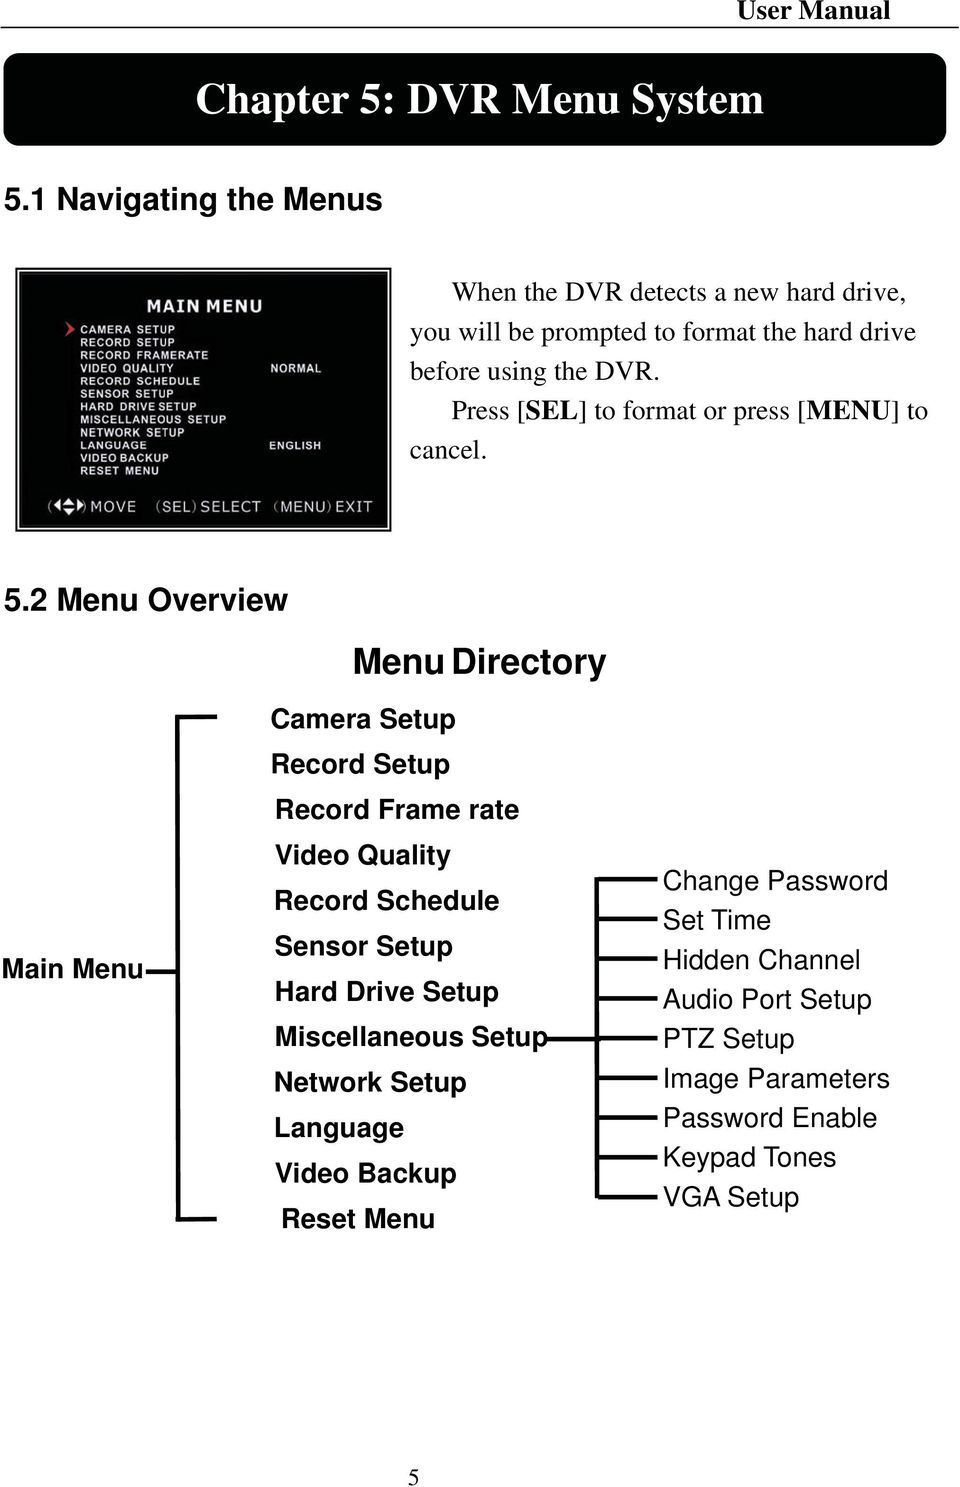 using the select/modify DVR. settings Press [MENU]: [SEL] to press format again or to press exit [MENU] or go to cancel. back to previous menu. 5.